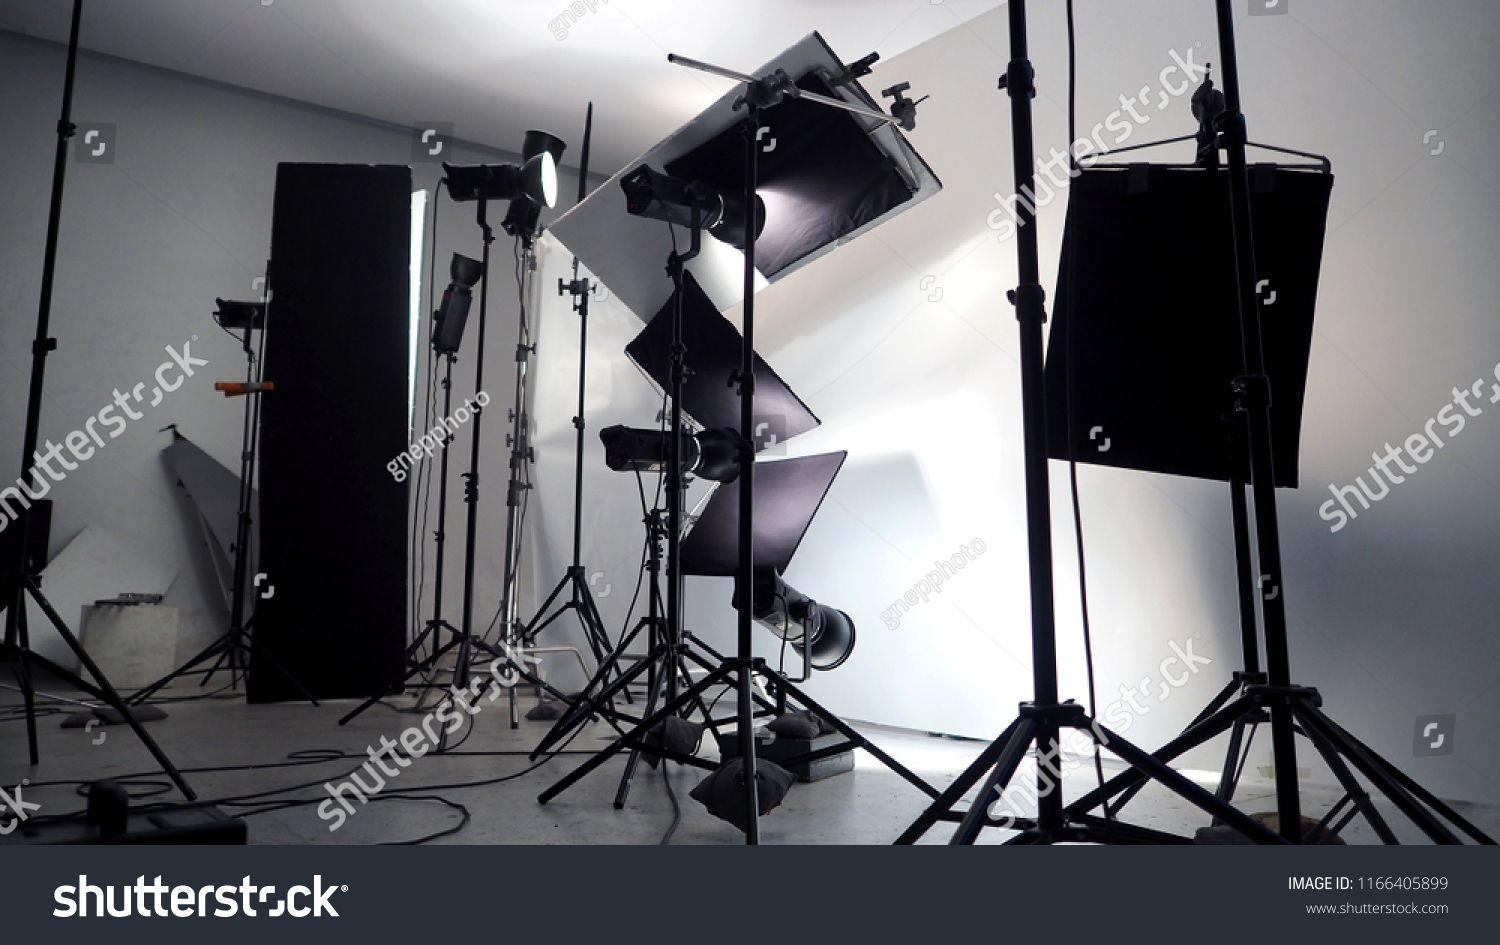 Lighting Setup Studio Commercial Works Such Stockfoto Jetzt